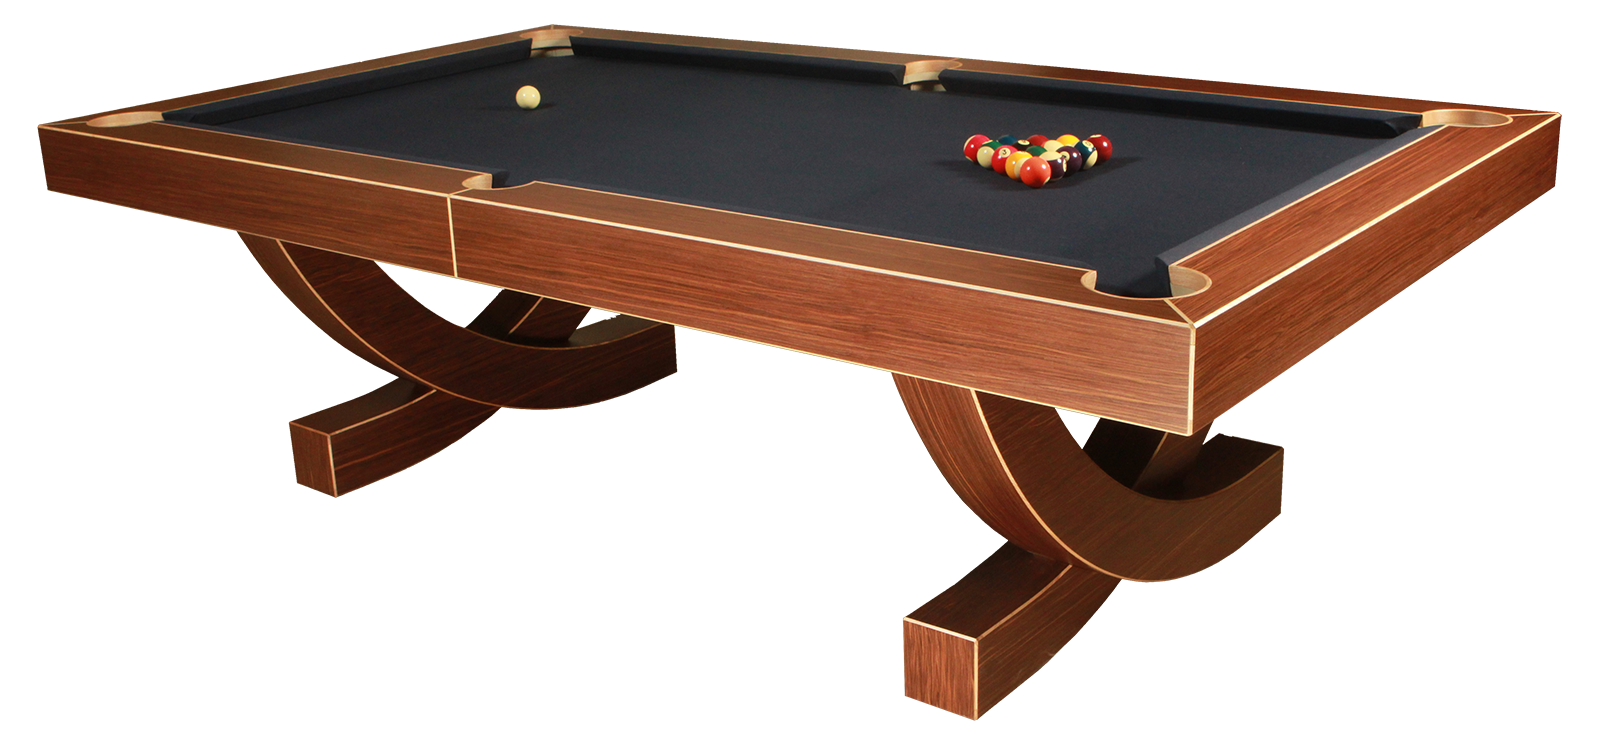 The Arc - Contemporary Pool Table